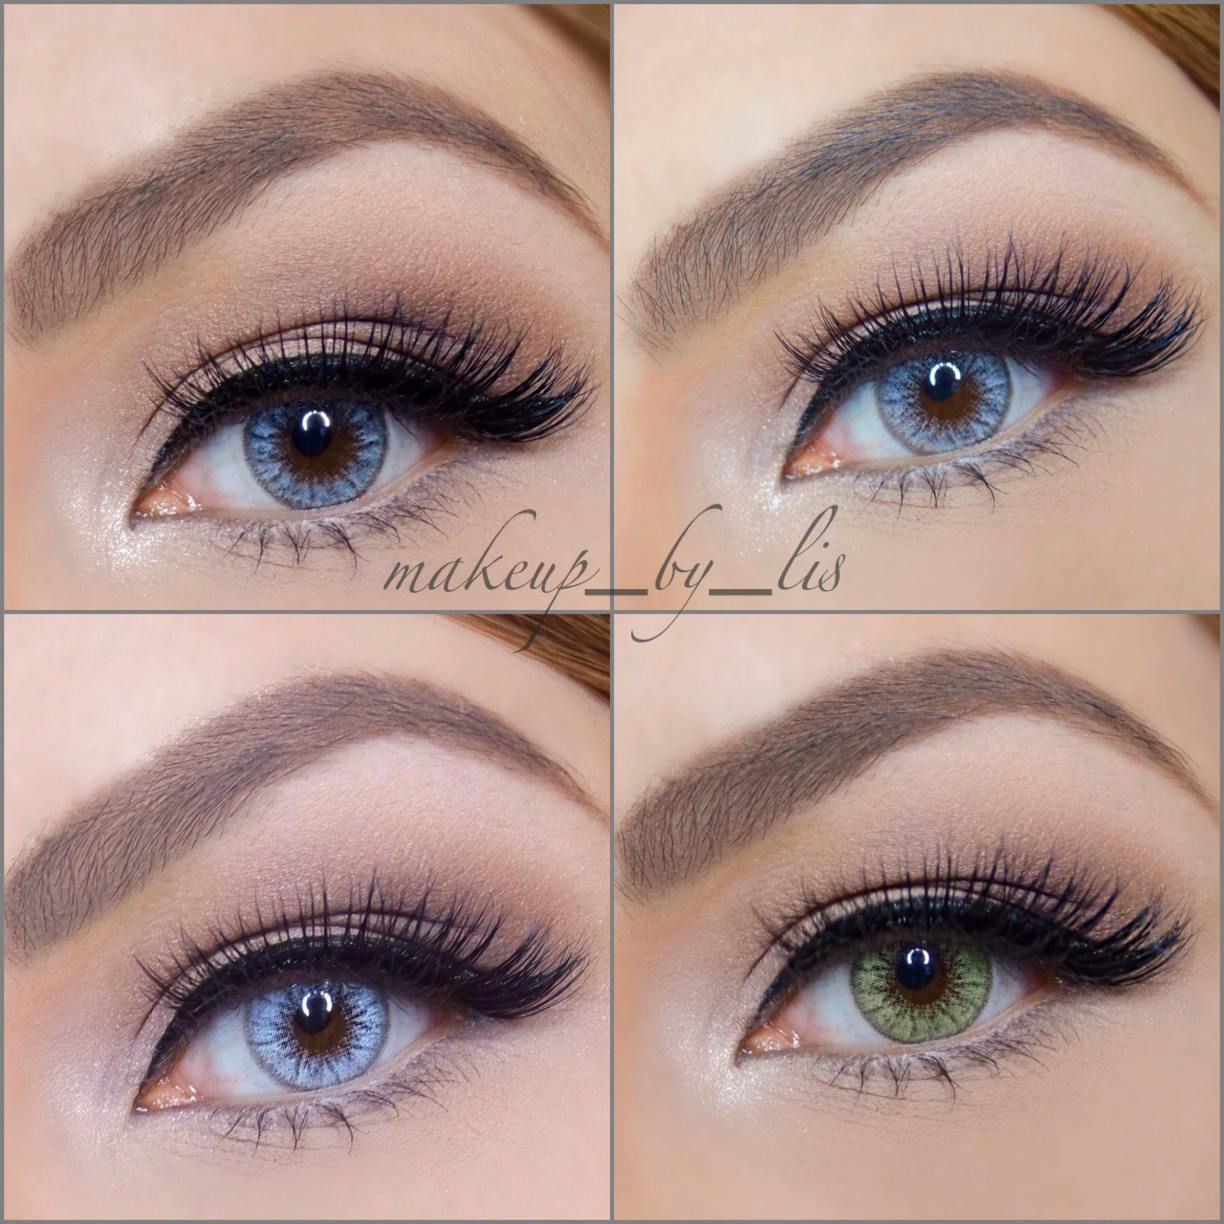 Desio Lens Contact Lenses Review Makeup By Lis Puerto